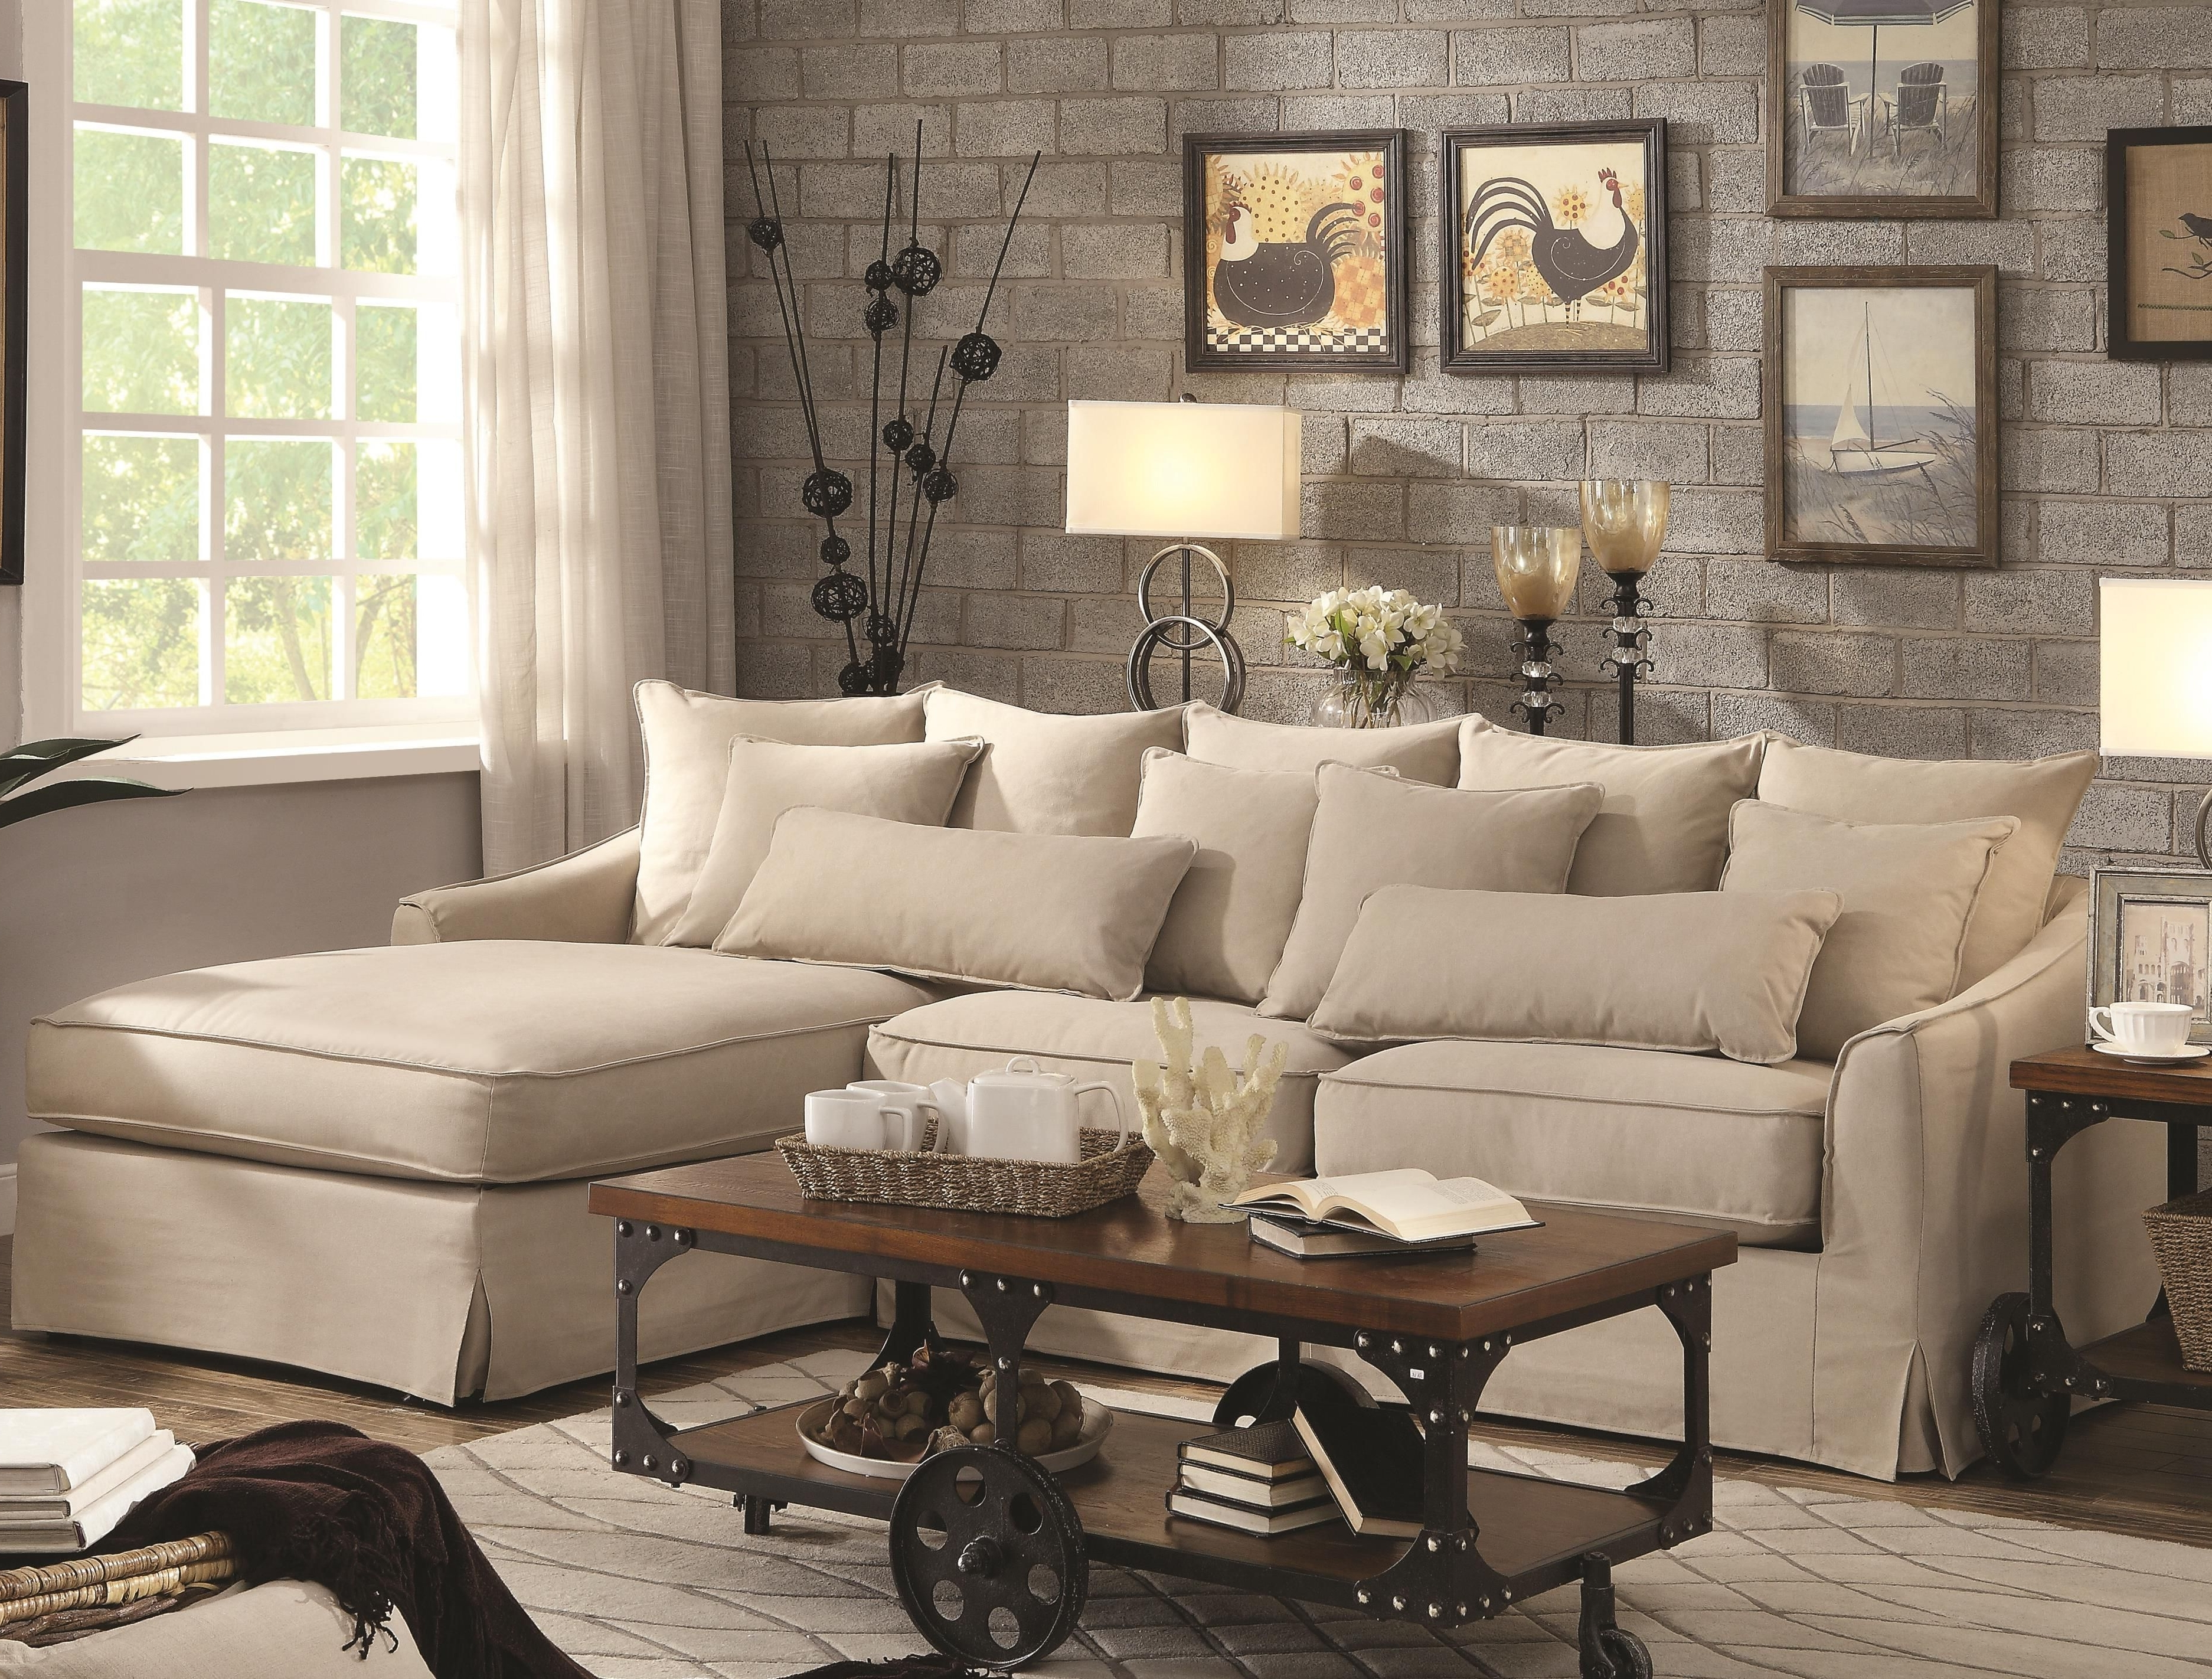 Preferred Beige Sectionals With Chaise Throughout Coaster Knottley Slipcovered Sectional Sofa With Chaise And (View 5 of 15)